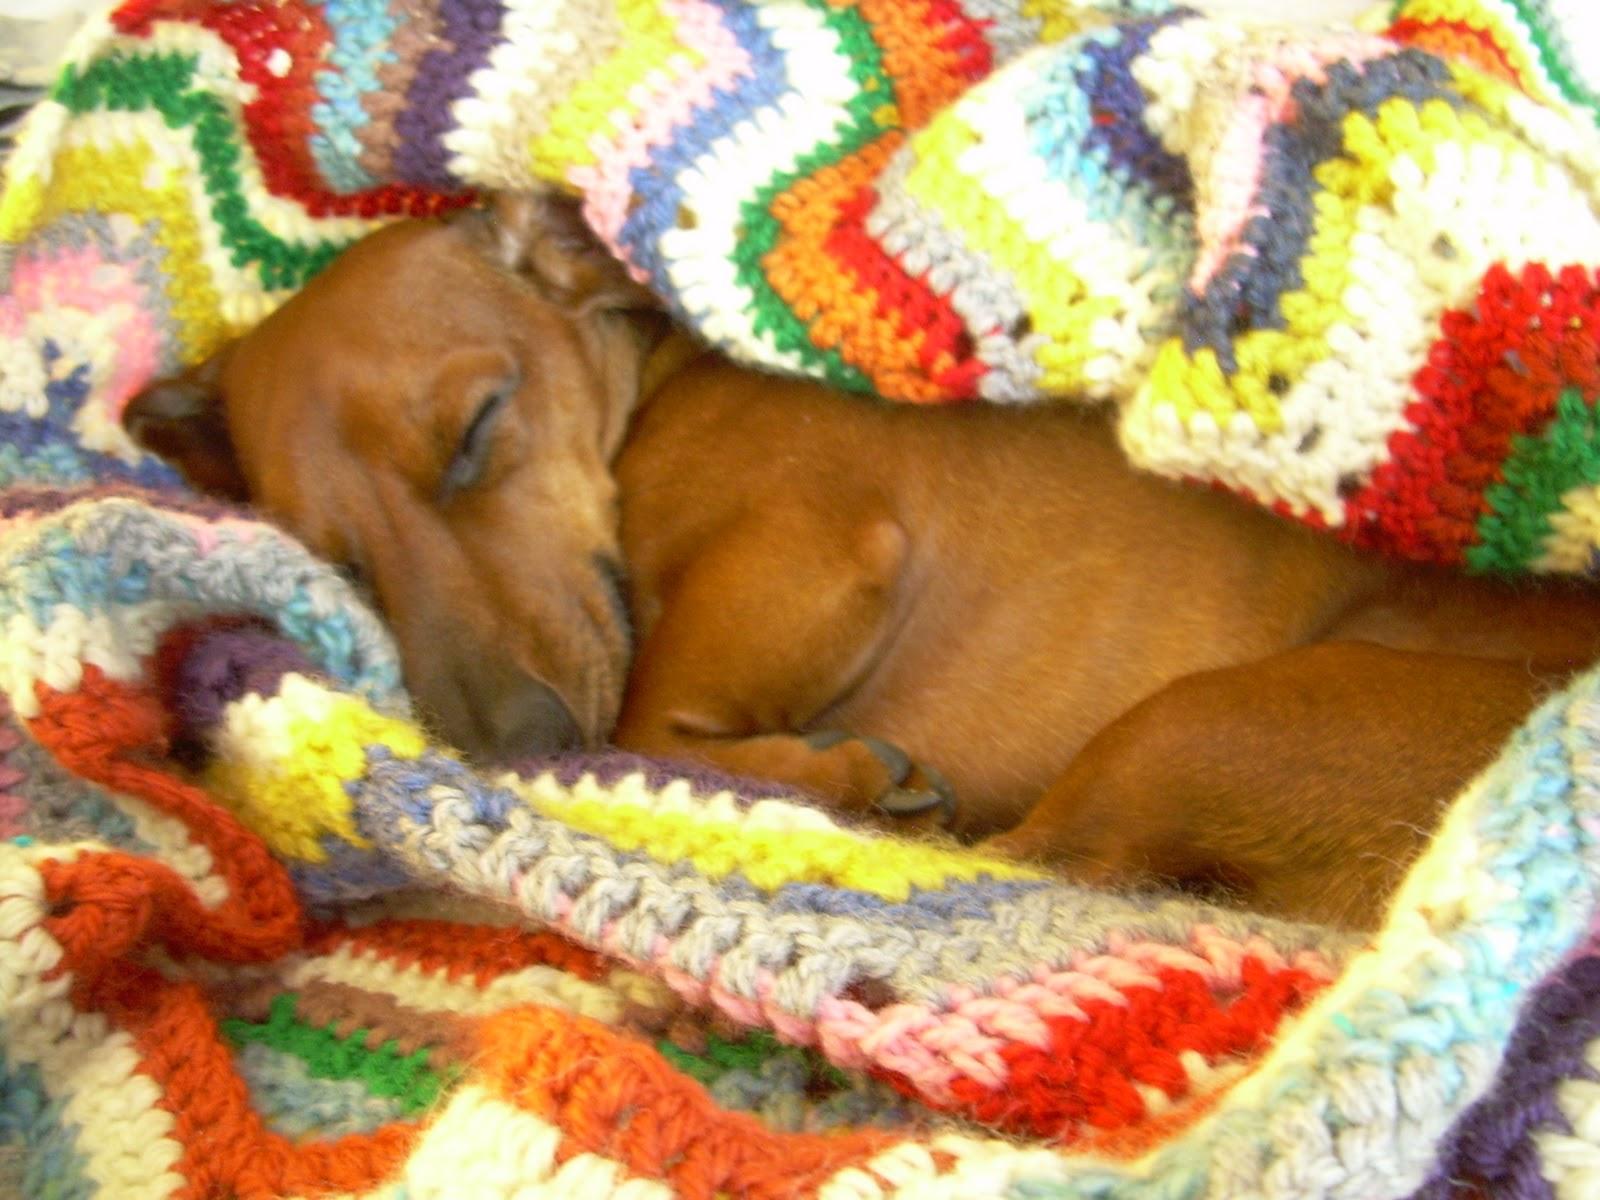 Desktop Weiner Dog Wallpapers 79 images in Collection Page 1 1600x1200